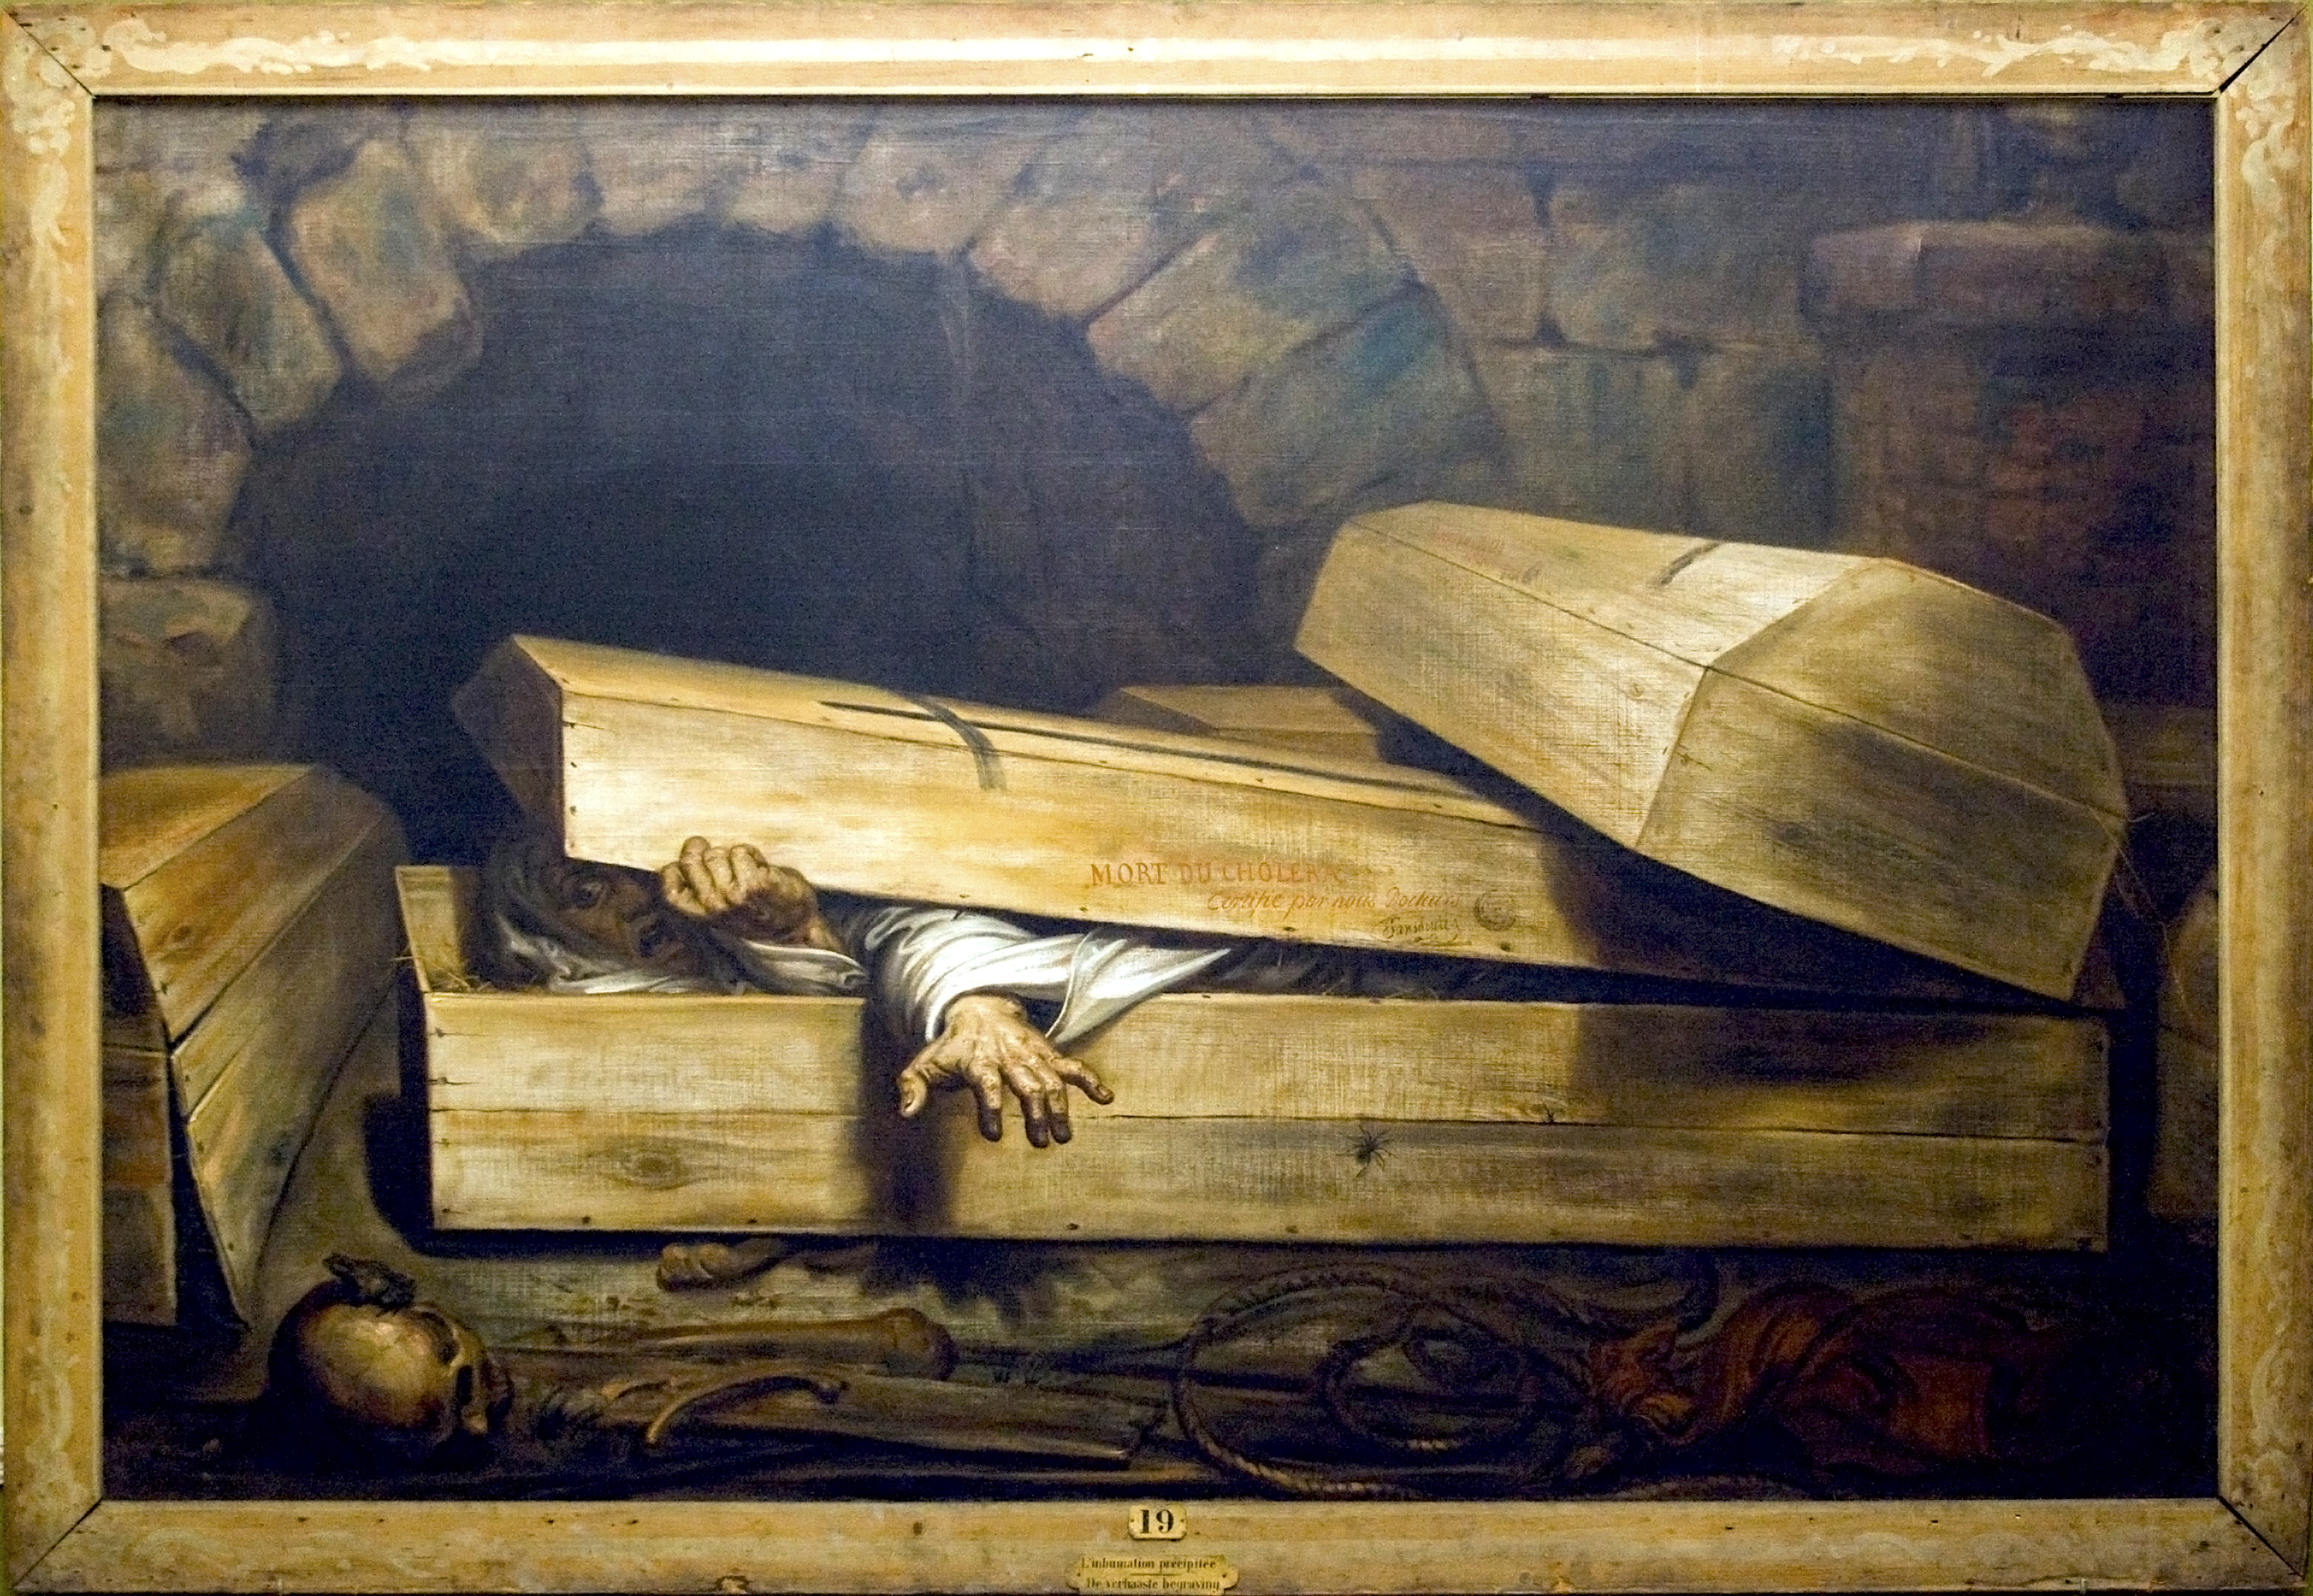 The Nineteenth Century Obsession with Premature Burial